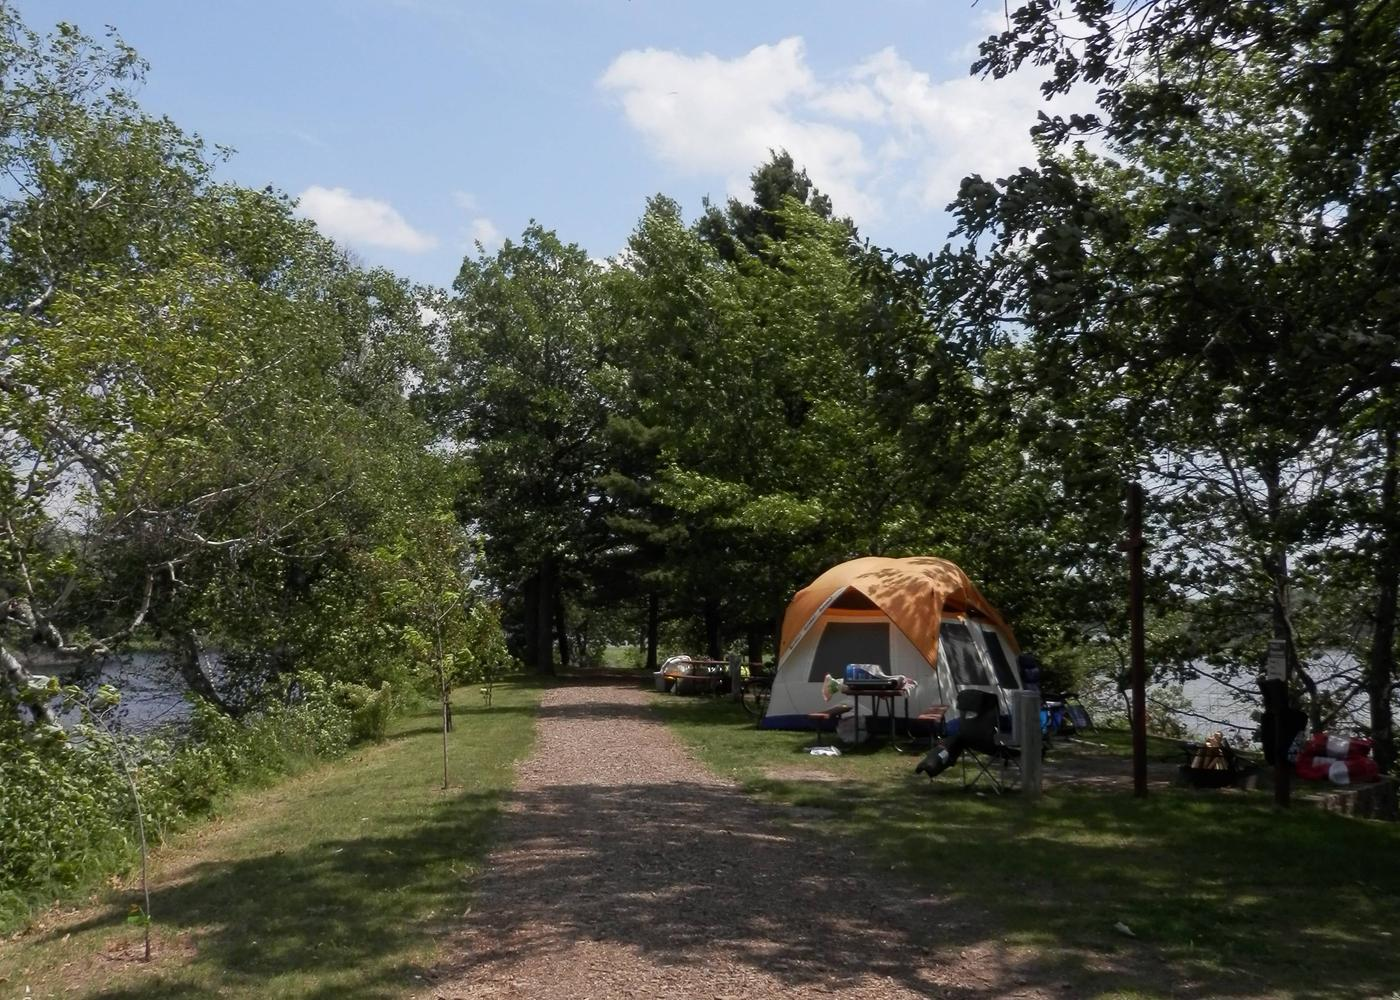 Tent campsiteSouth tent camping area